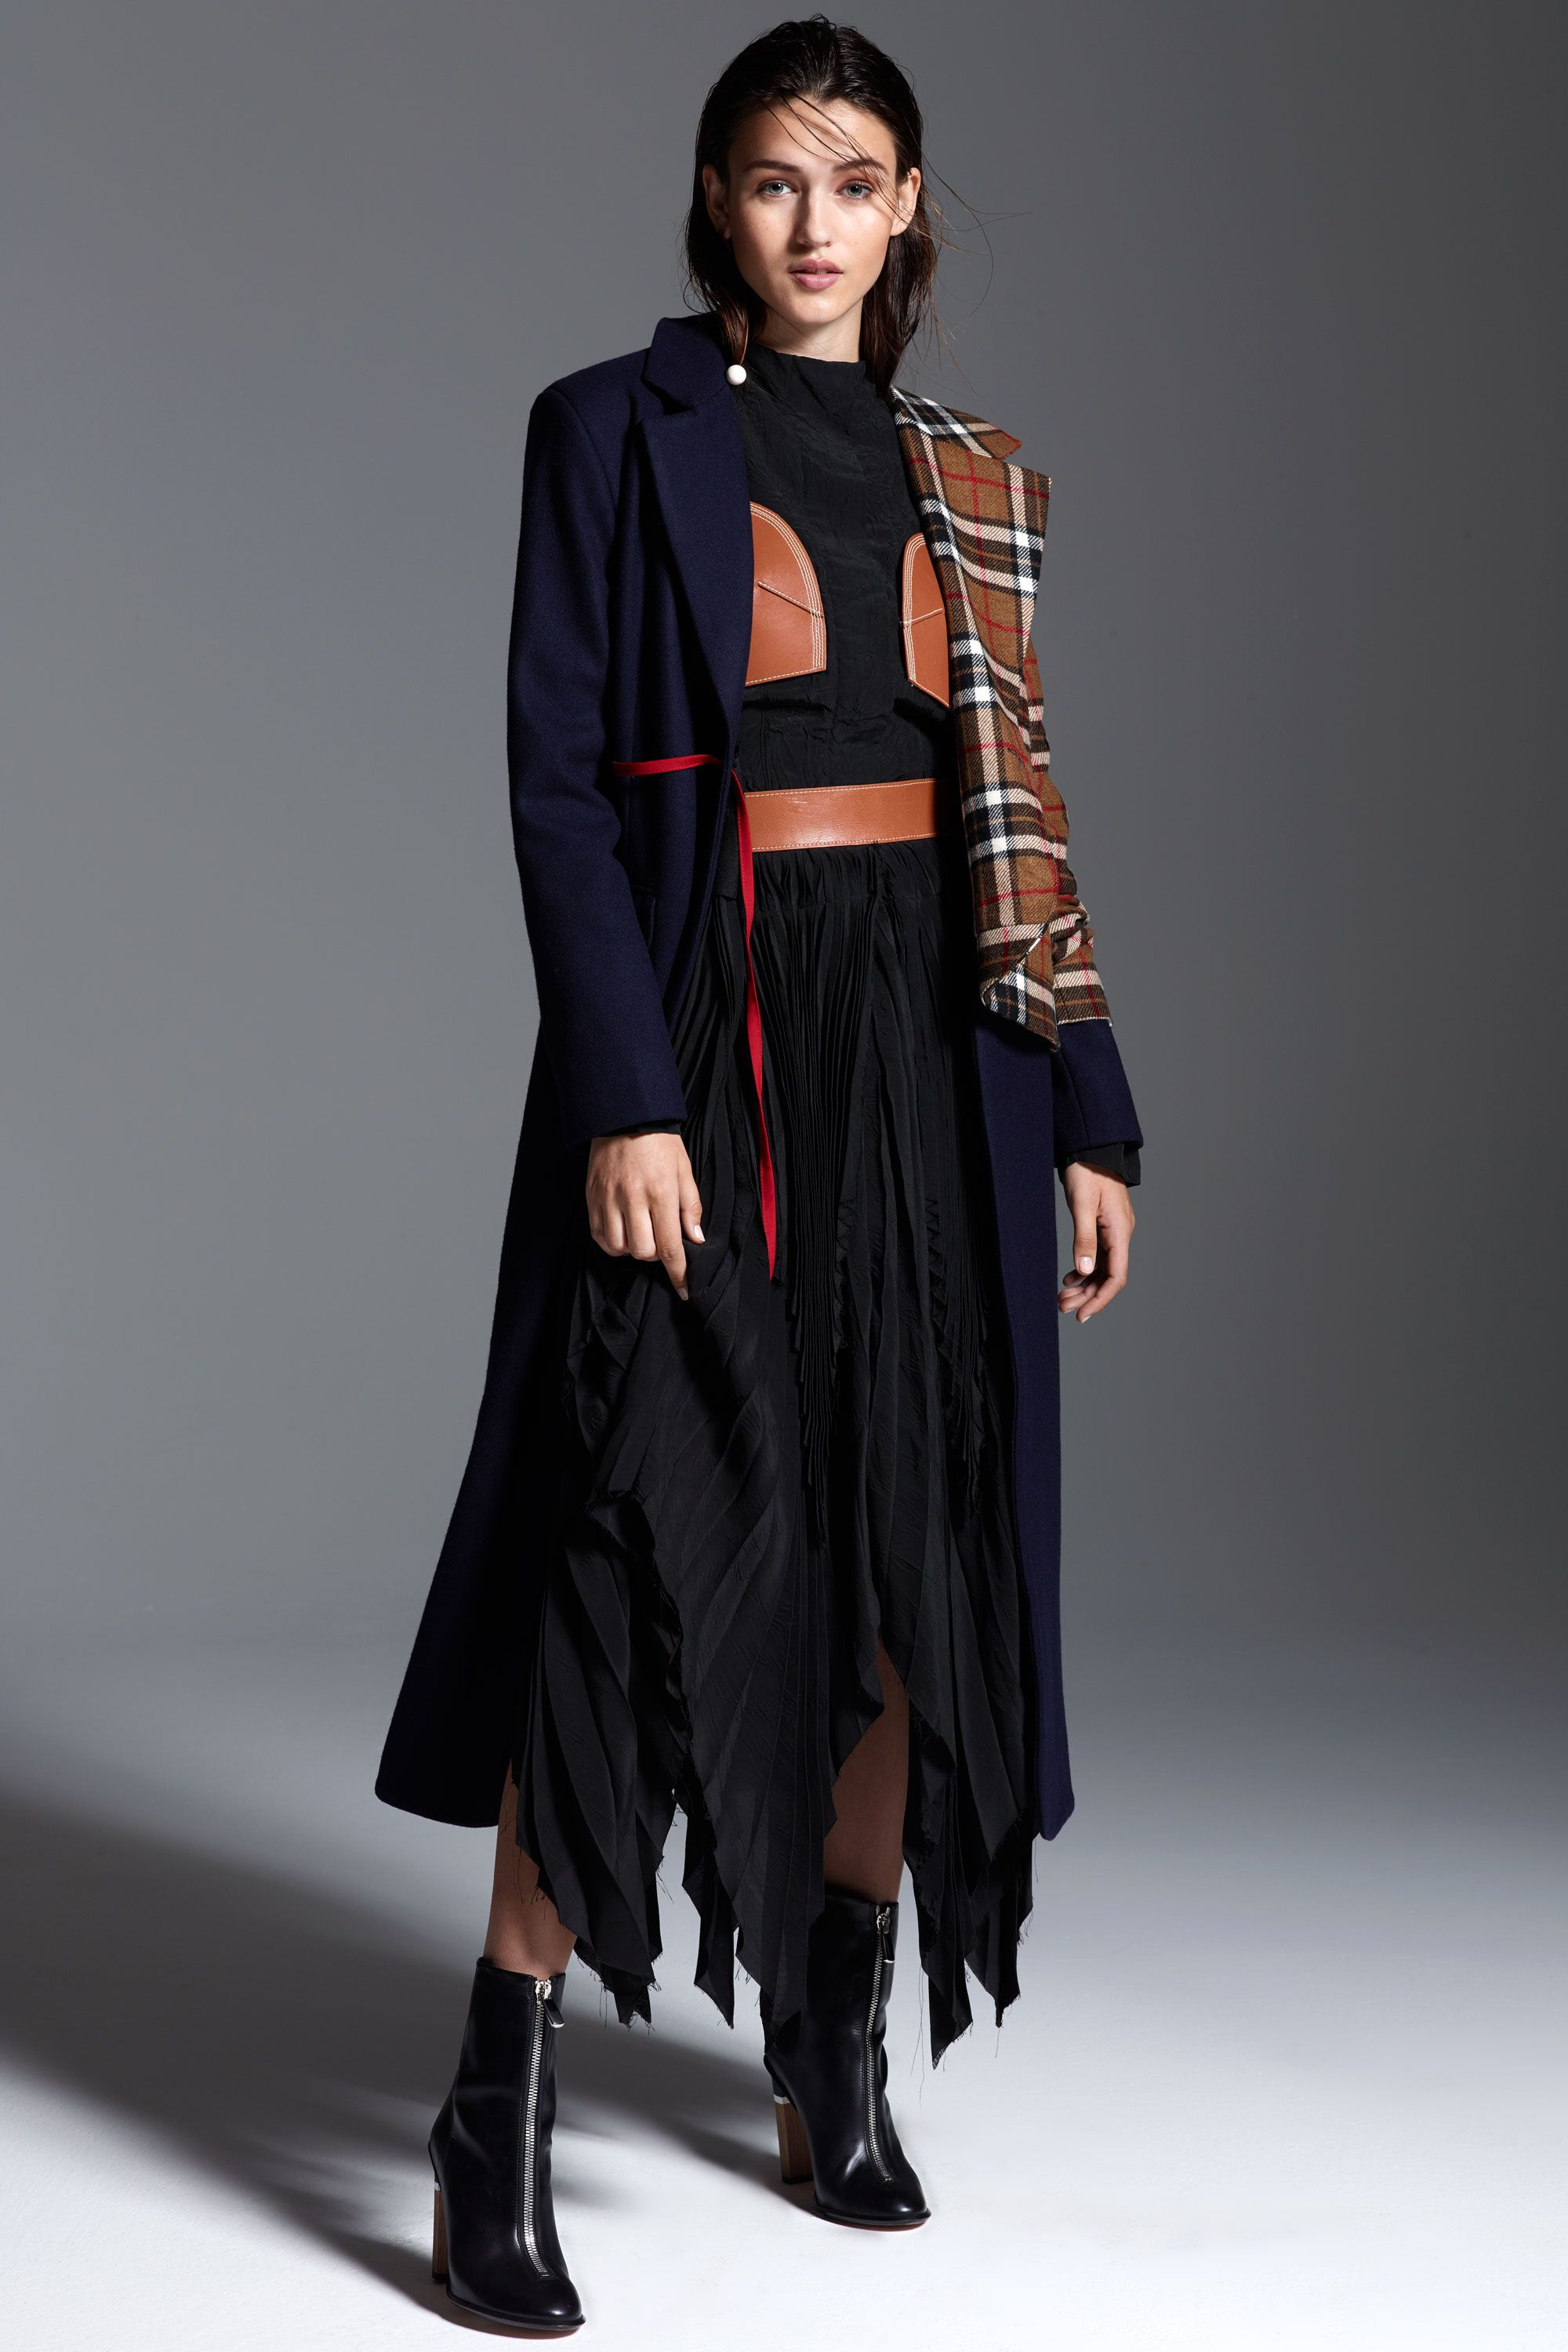 "<p>Deconstruction and reconstruction are major themes in fashion for fall. Nail the look with a patchwork coat—<span class=""redactor-invisible-space"" data-verified=""redactor"" data-redactor-tag=""span"" data-redactor-class=""redactor-invisible-space""></span>complete with an craftsy-chic outfit underneath. <span class=""redactor-invisible-space"" data-verified=""redactor"" data-redactor-tag=""span"" data-redactor-class=""redactor-invisible-space""></span></p><p><em data-redactor-tag=""em"" data-verified=""redactor""><strong data-redactor-tag=""strong"" data-verified=""redactor"">Jacquemus</strong> 'Le Manteau Vest' Long Wool Coat, $1,190, <a href=""http://shop.nordstrom.com/s/jacquemus-le-manteau-vest-long-wool-coat/4336665?&cm_mmc=Mindshare_Nordstrom-_-WAP_October-_-Hearst-_-proactive"" target=""_blank"">nordstrom.com</a>; <strong data-redactor-tag=""strong"" data-verified=""redactor"">Loewe</strong> Top and Pleated Midi Skirt, for similar styles visit <a href=""http://shop.nordstrom.com/c/loewe?origin=productBrandLink&page=2&top=66"" target=""_blank"">nordstrom.com</a>; <strong data-redactor-tag=""strong"" data-verified=""redactor"">BOSS</strong> Zip Booties, $1,095, <a href=""http://www.hugoboss.com/us/%27zip-bootie%27-italian-calfskin-zip-ankle-boot/hbna50326443.html?cgid=12001&dwvar_hbna50326443_color=001_Black#start=1"" target=""_blank"">hugoboss.com</a>; <strong data-redactor-tag=""strong"" data-verified=""redactor"">Stella McCartney</strong> Long Ball Detail Earring, $630, </em><a href=""https://www.farfetch.com/shopping/women/Stella-McCartney-long-ball-detail-earrings-item-11664901.aspx?utm_source=gcdL/ATRVoE&utm_medium=affiliate&utm_campaign=Linkshareus&utm_content=10&utm_term=USNetwork"" target=""_blank""><em data-redactor-tag=""em"" data-verified=""redactor"">farfetch.com</em></a></p>"